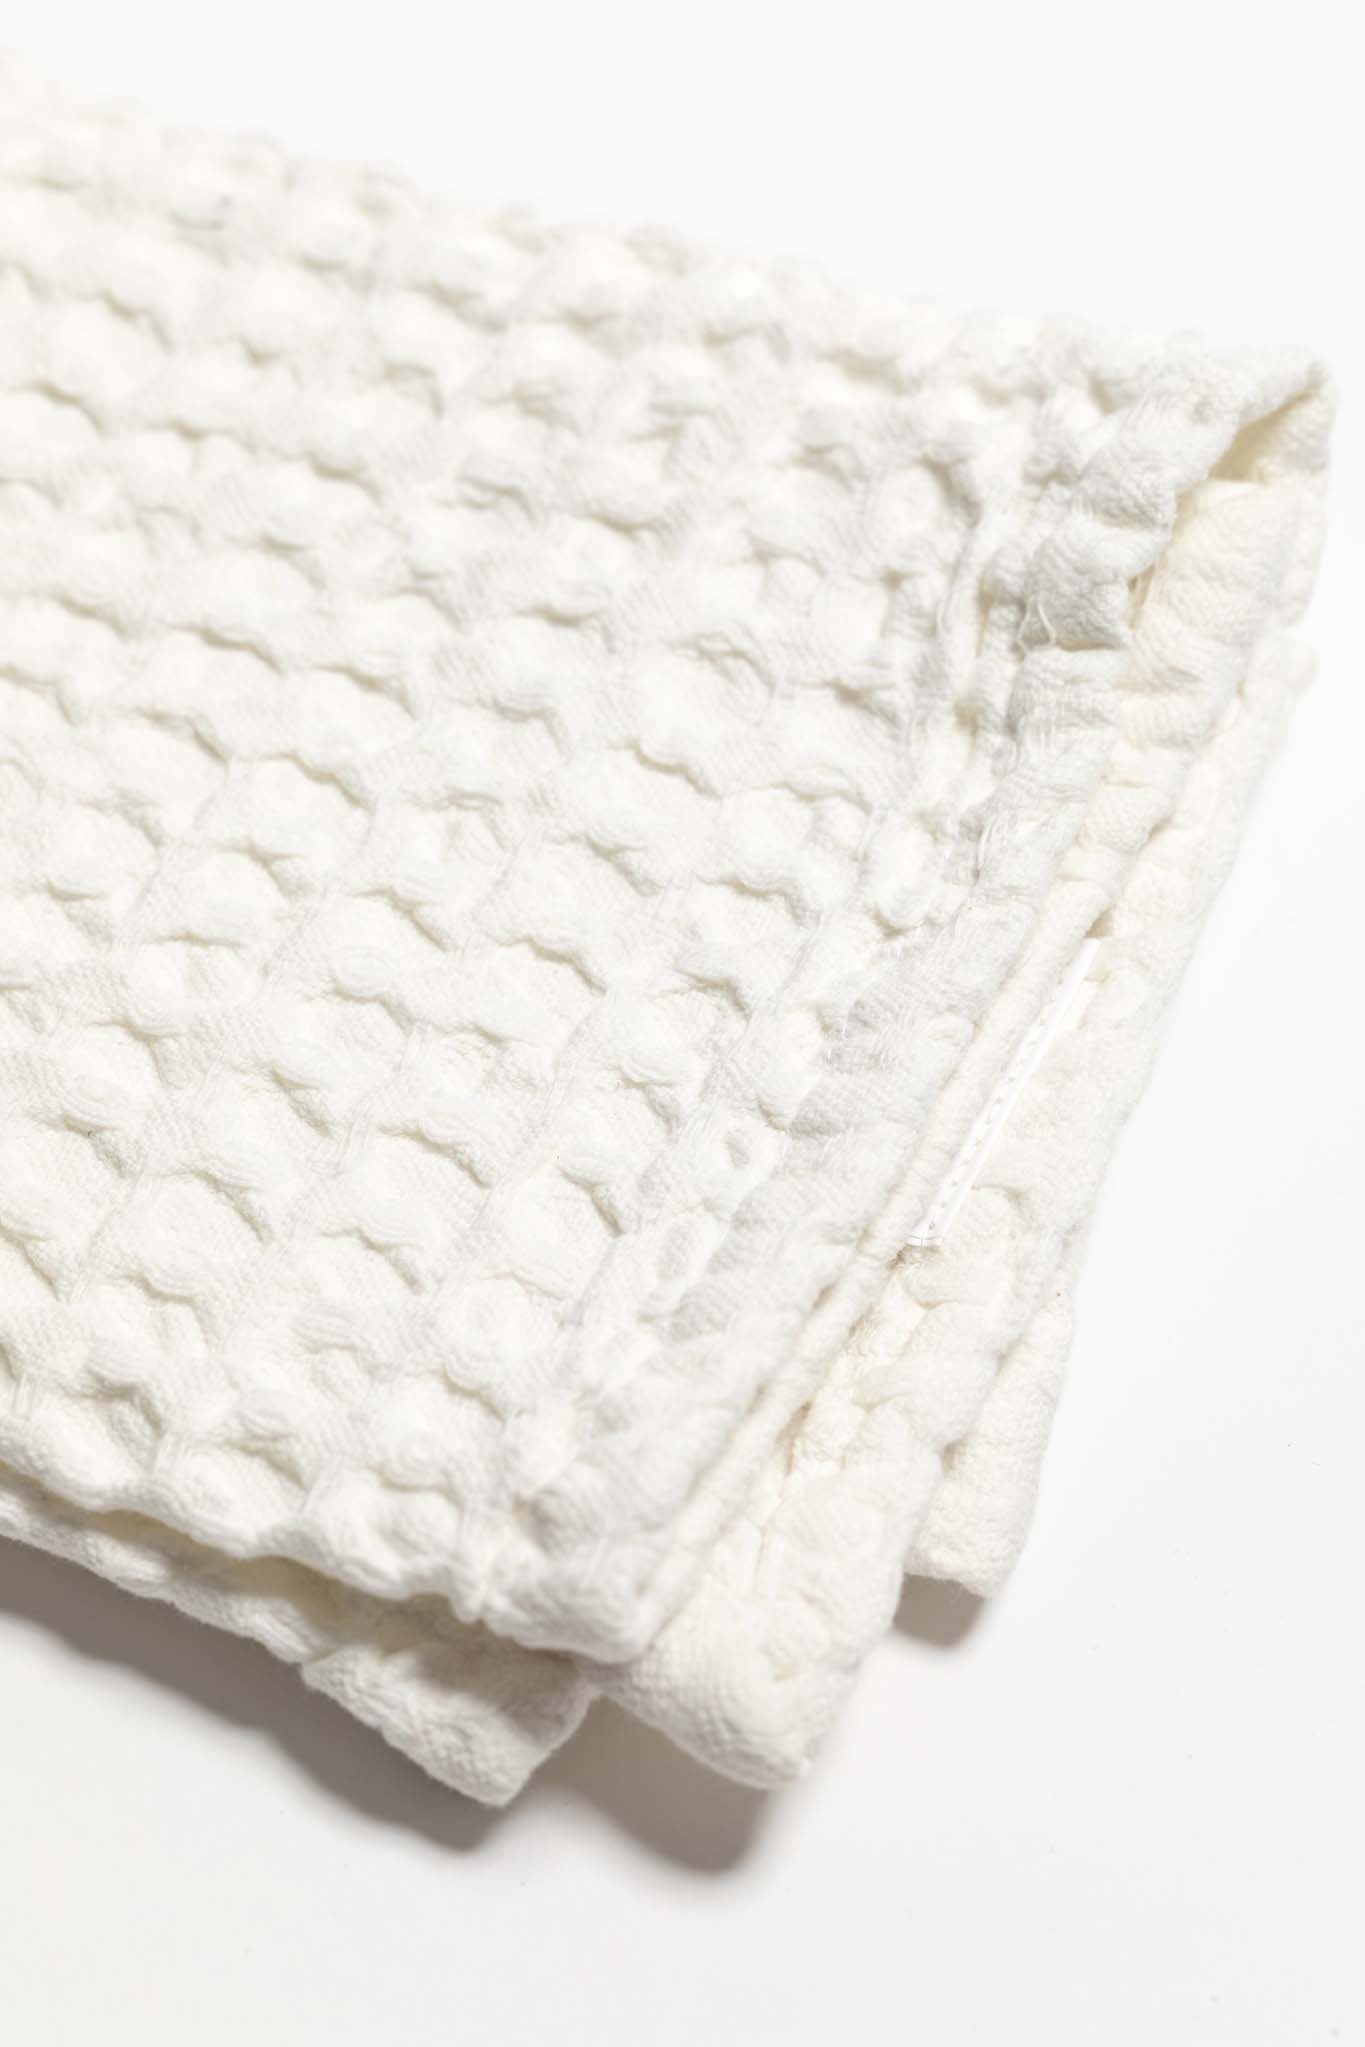 Daily Waffle Weave Tea Towel - Bleached White